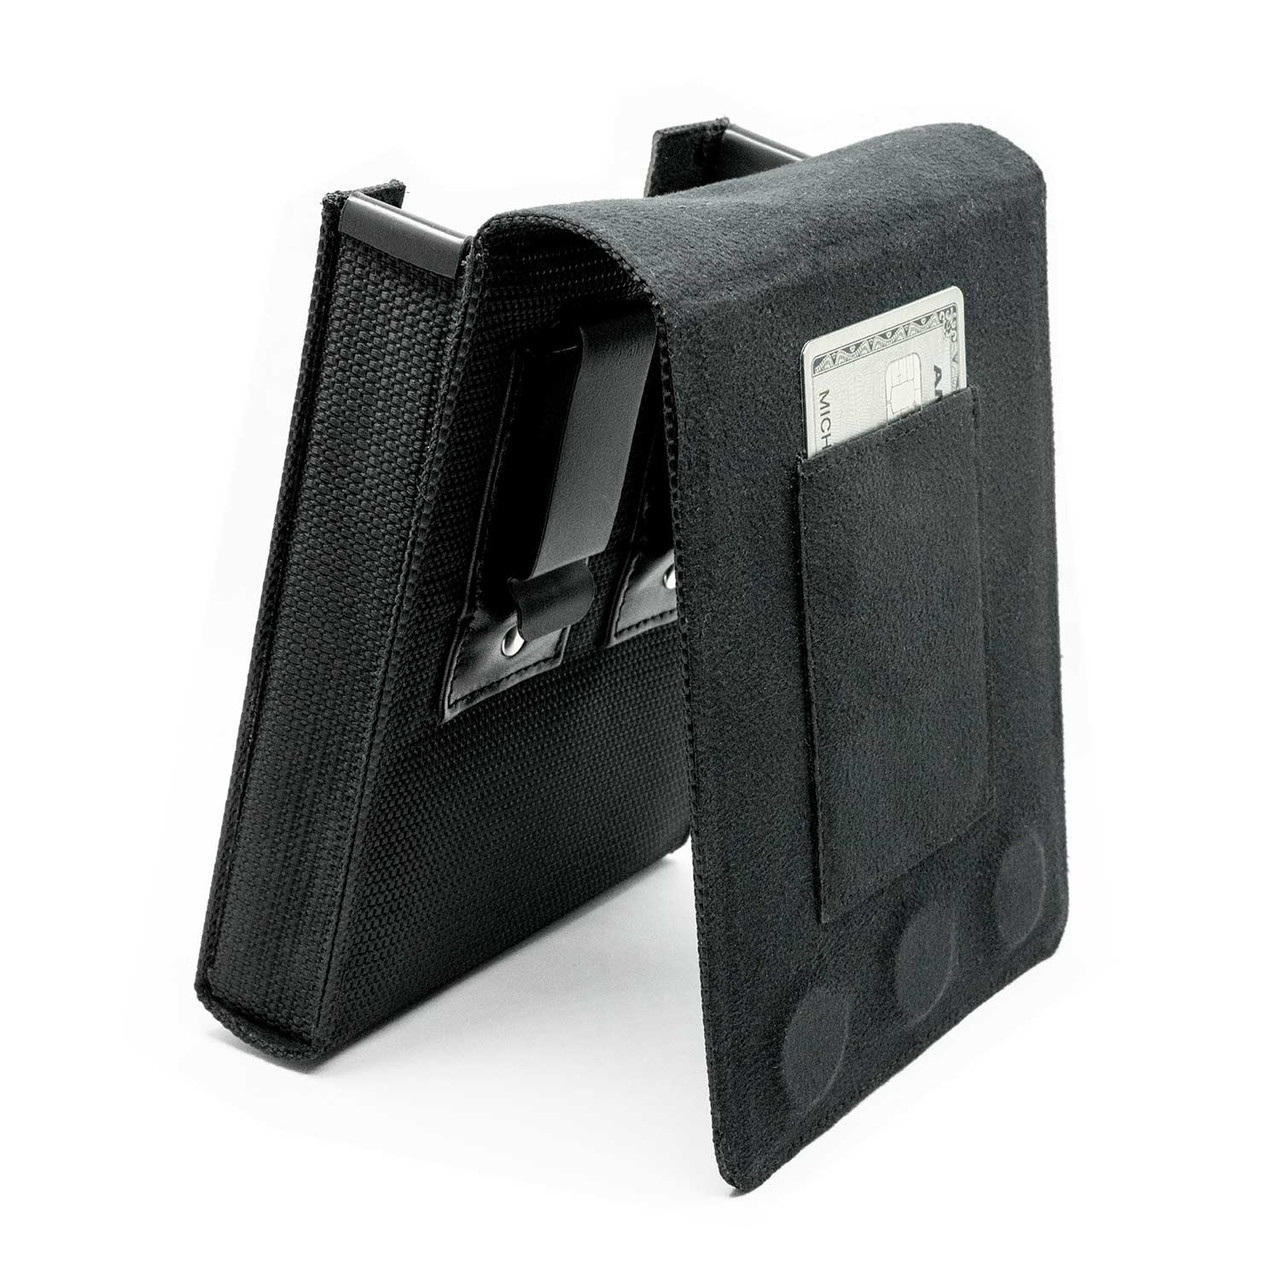 Springfield XDS 40 Holster